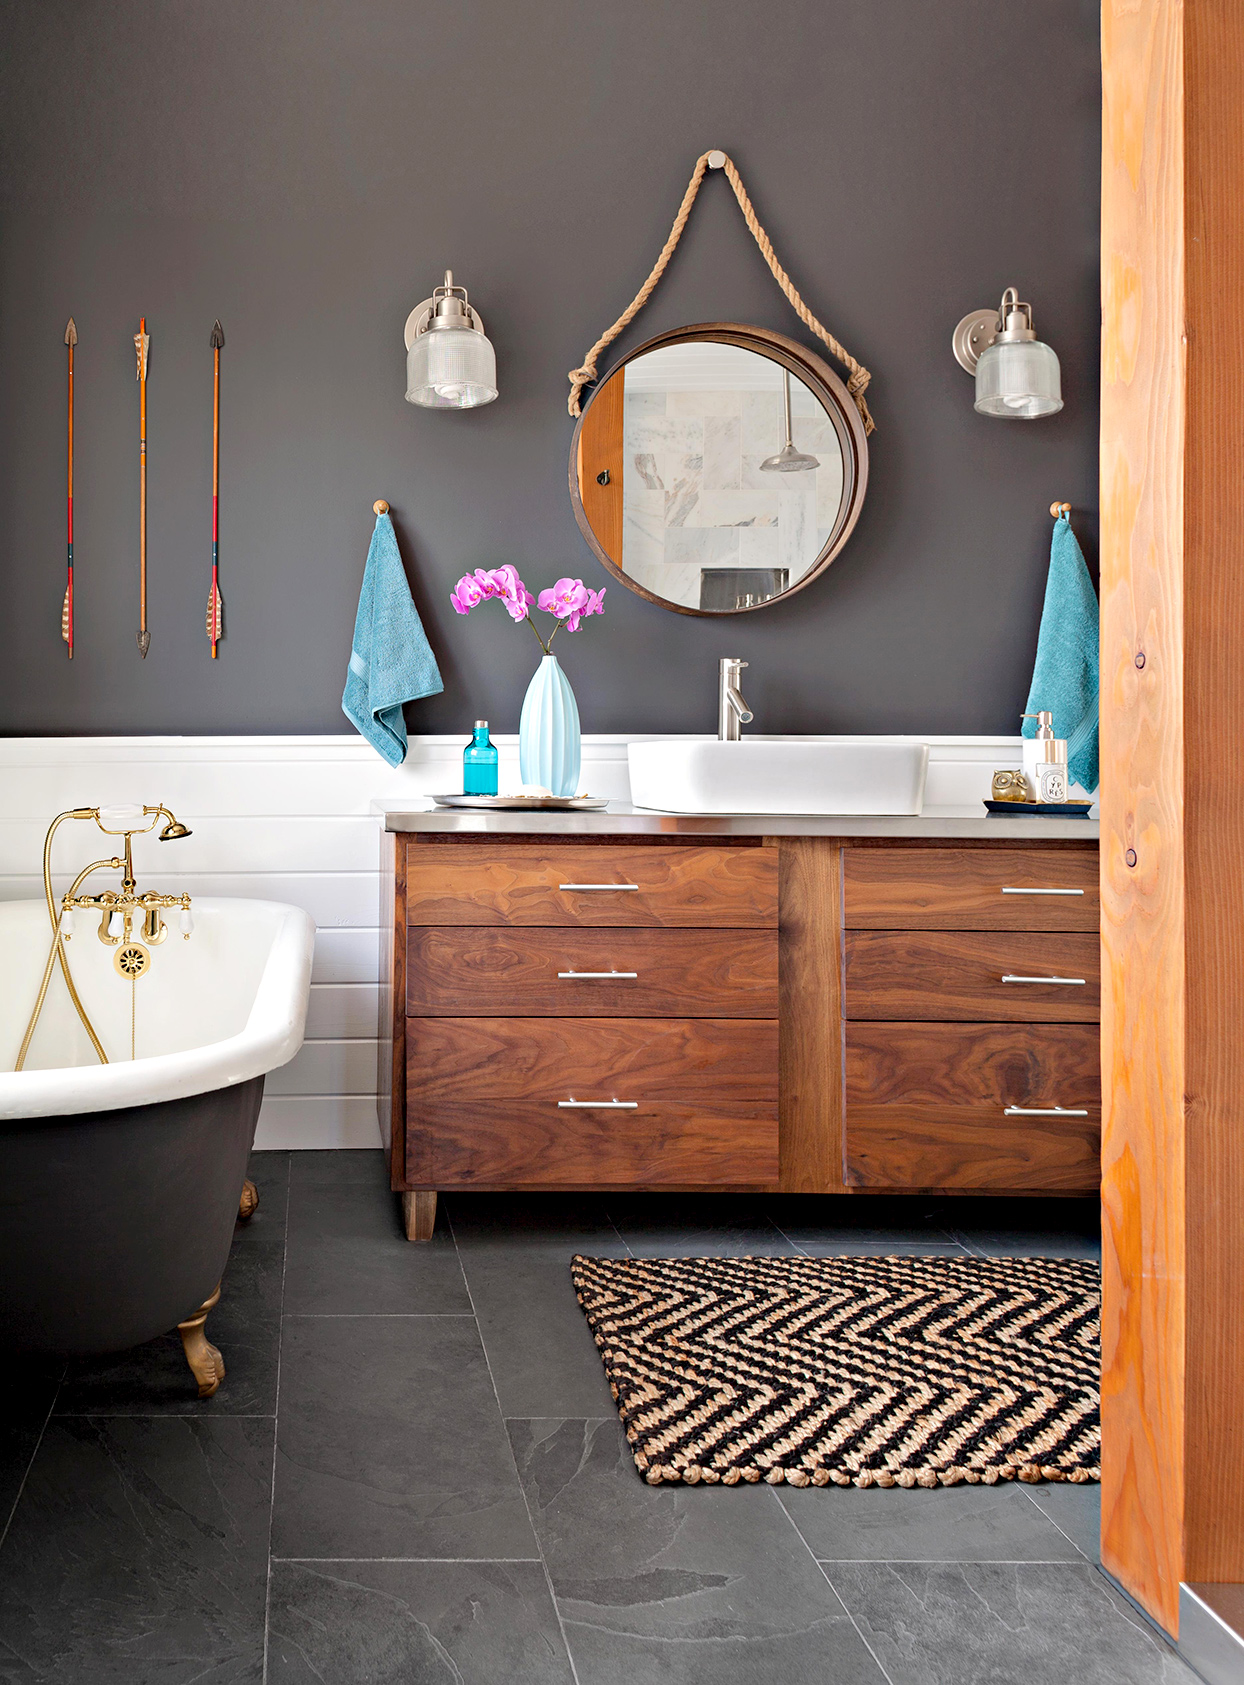 Bathroom with dark walls and wooden cabinets